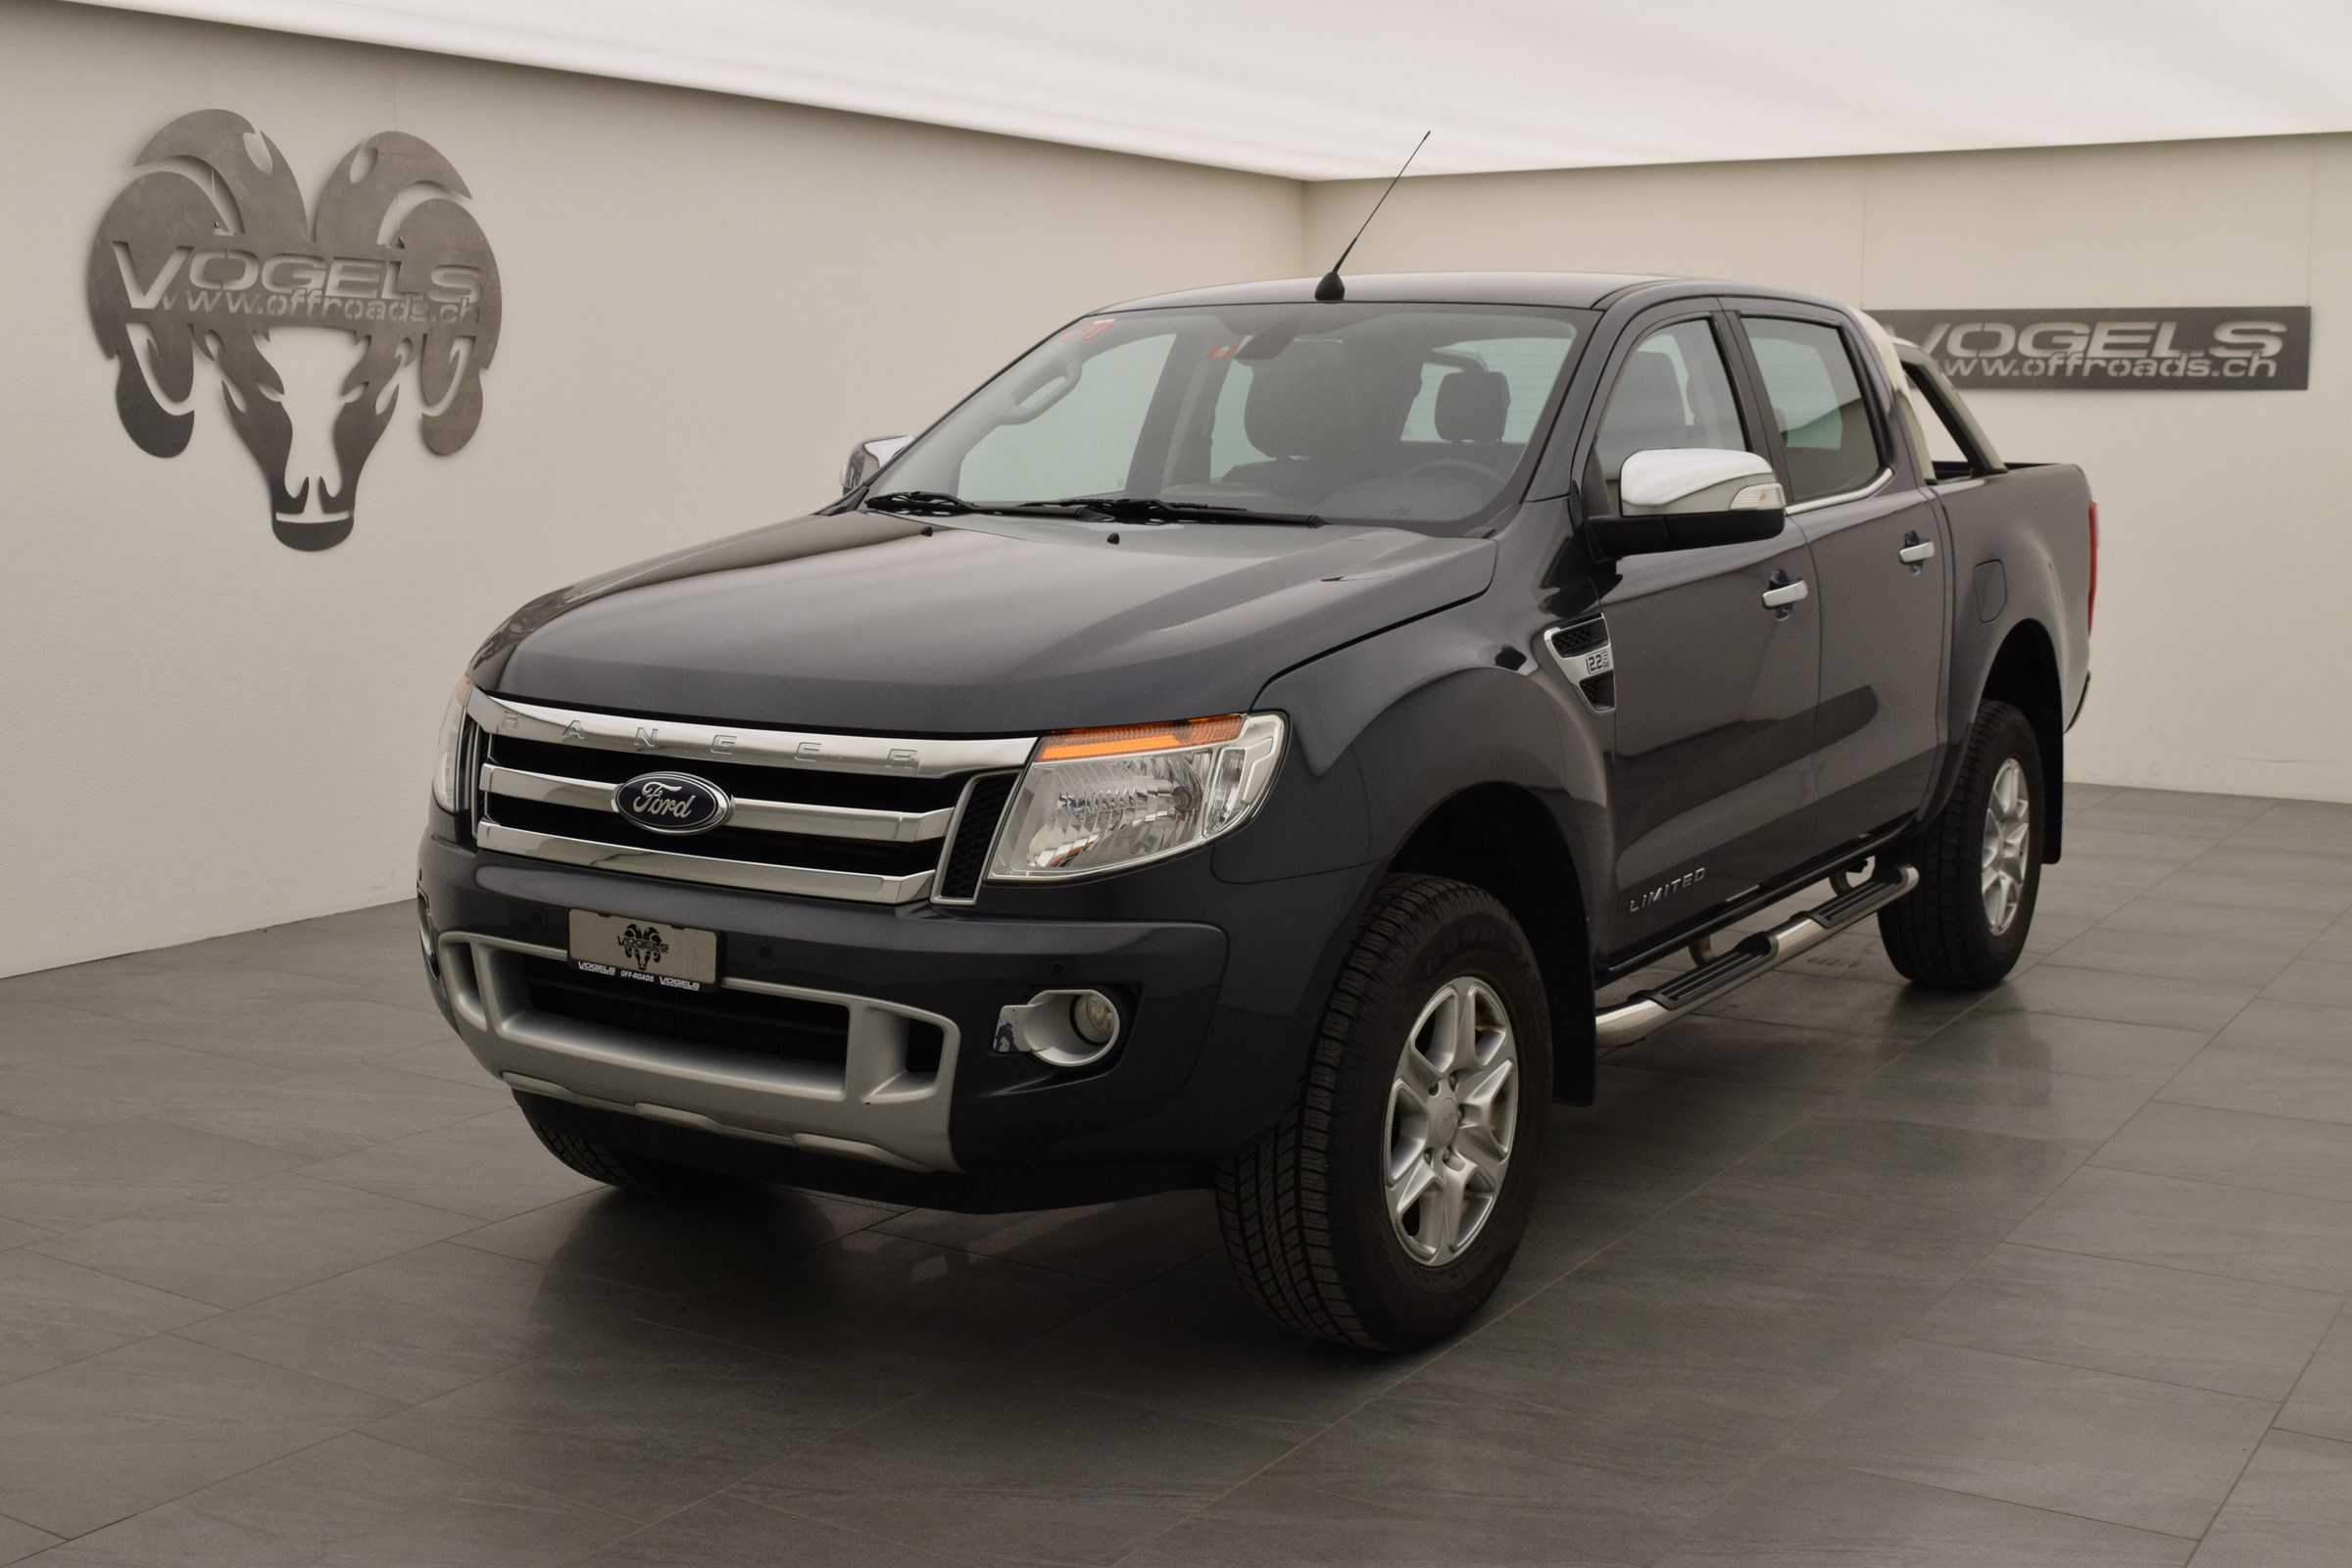 suv Ford Ranger 2.2TDCi Limited